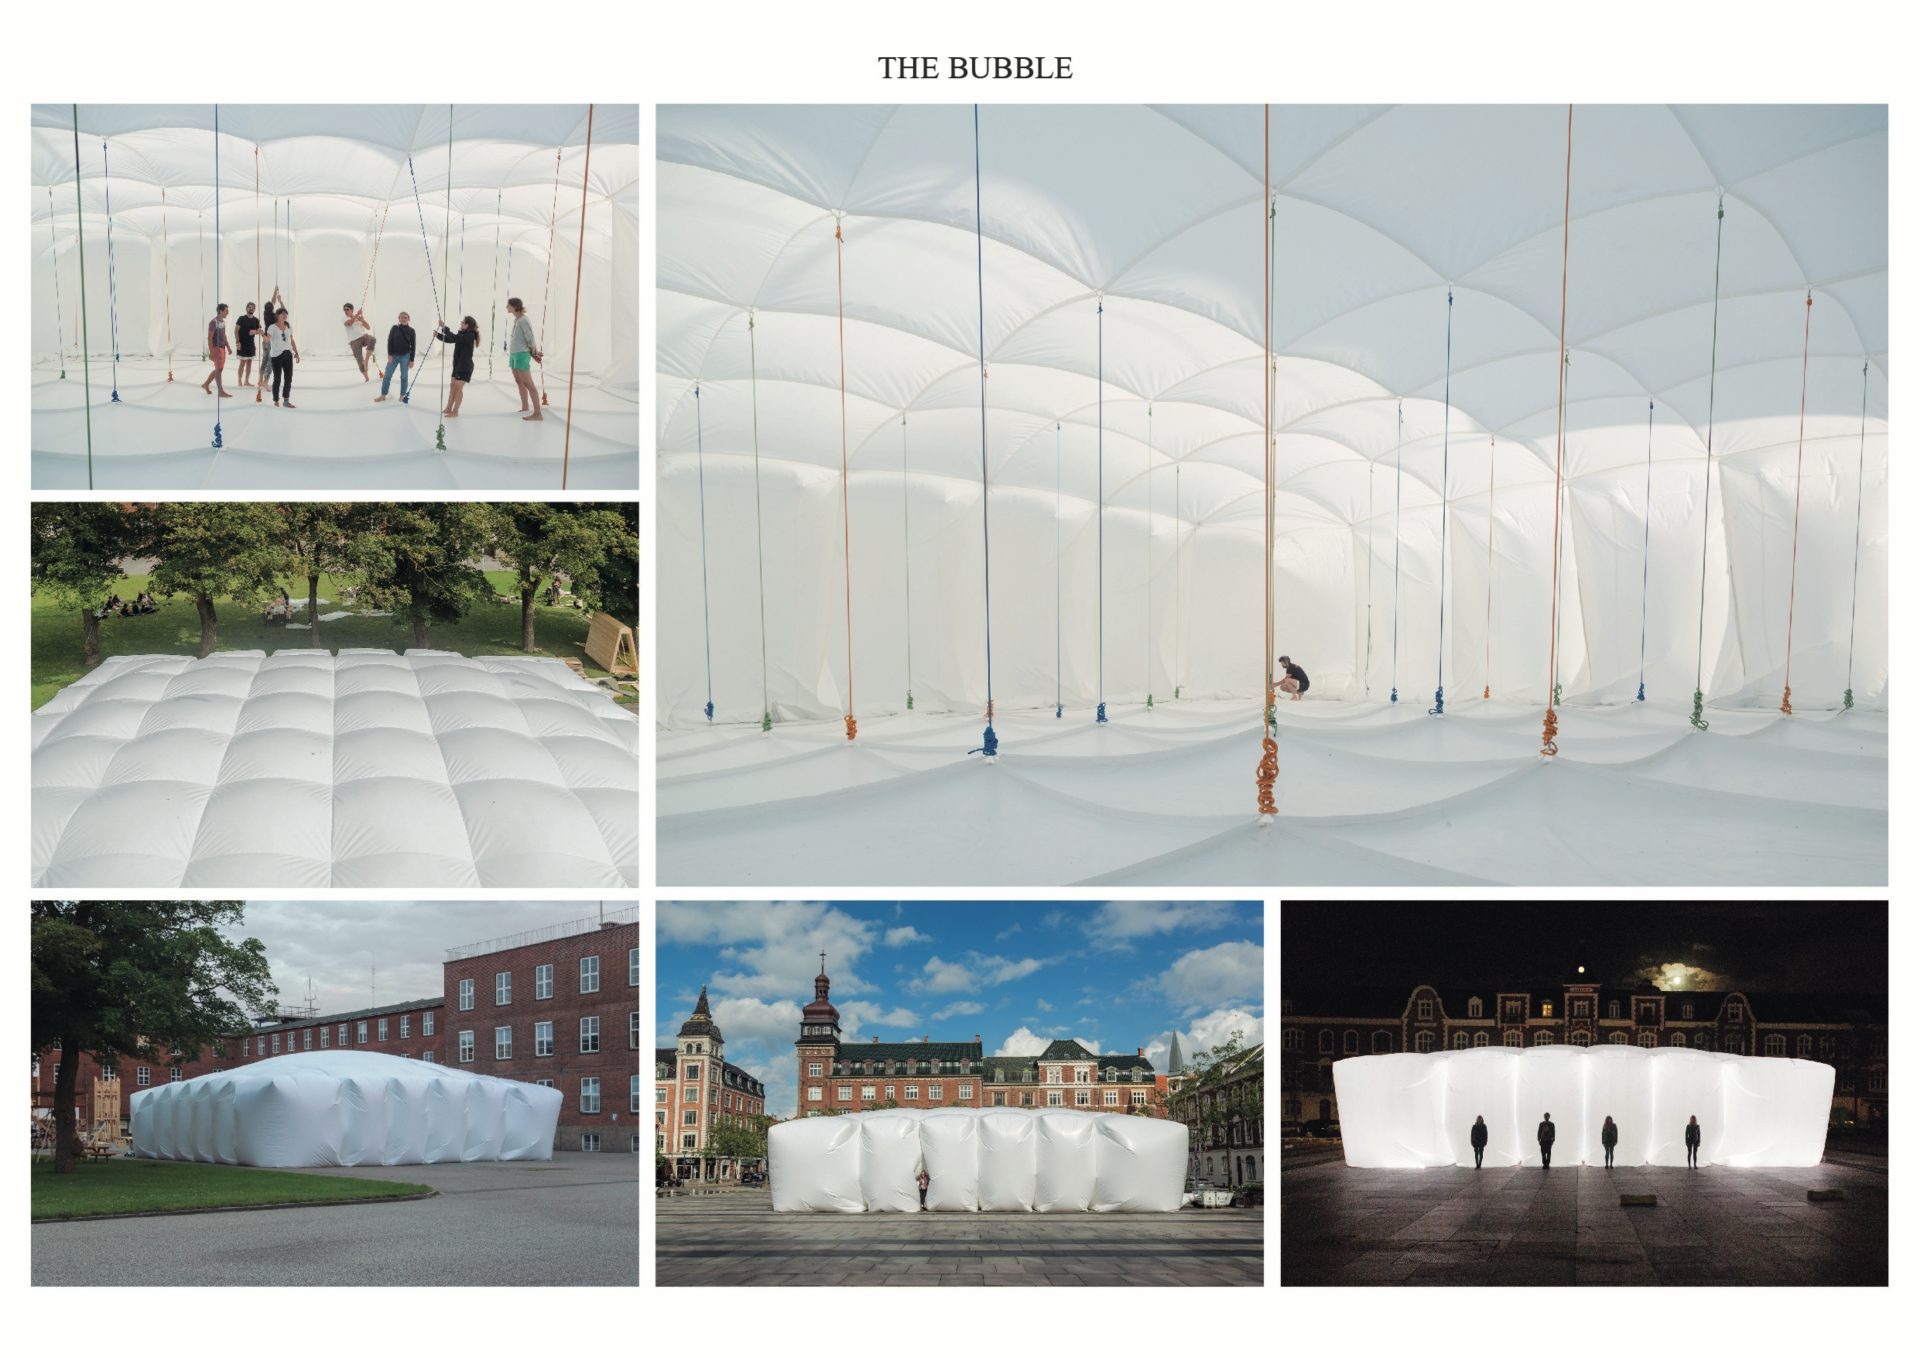 The first prize in Macro Architecture went to Hugo Cifre from the Universidad Europea de Madrid/Espacio La Nube and Miguel Angel Maure Blesa from the Universidad Politécnica de Madrid for their Bubble project. © Messe Frankfurt Exhibition GmbH.